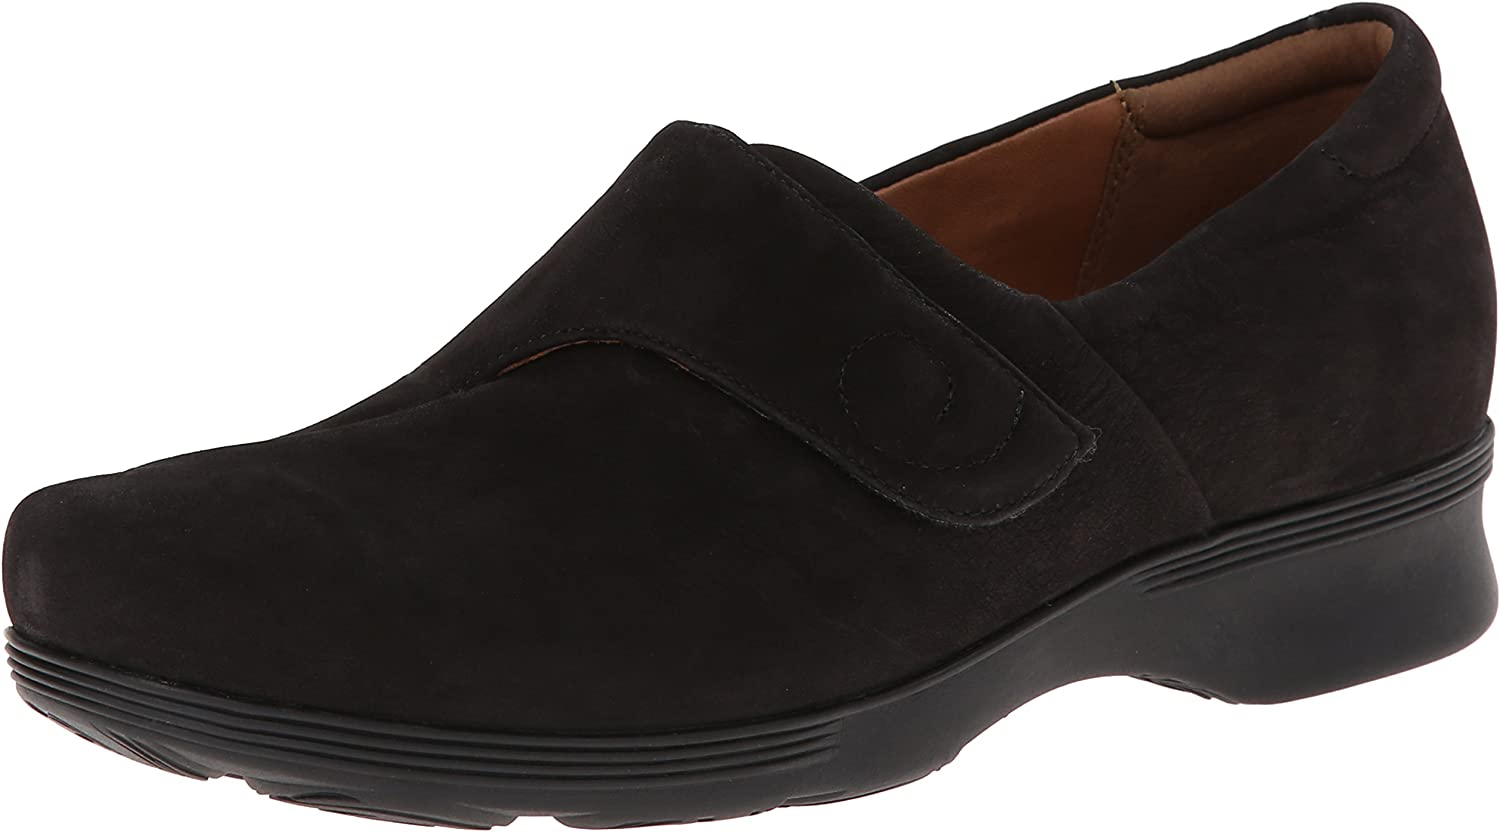 Clarks Women's Aubria Myth Comfort Slip On Casual Loafers